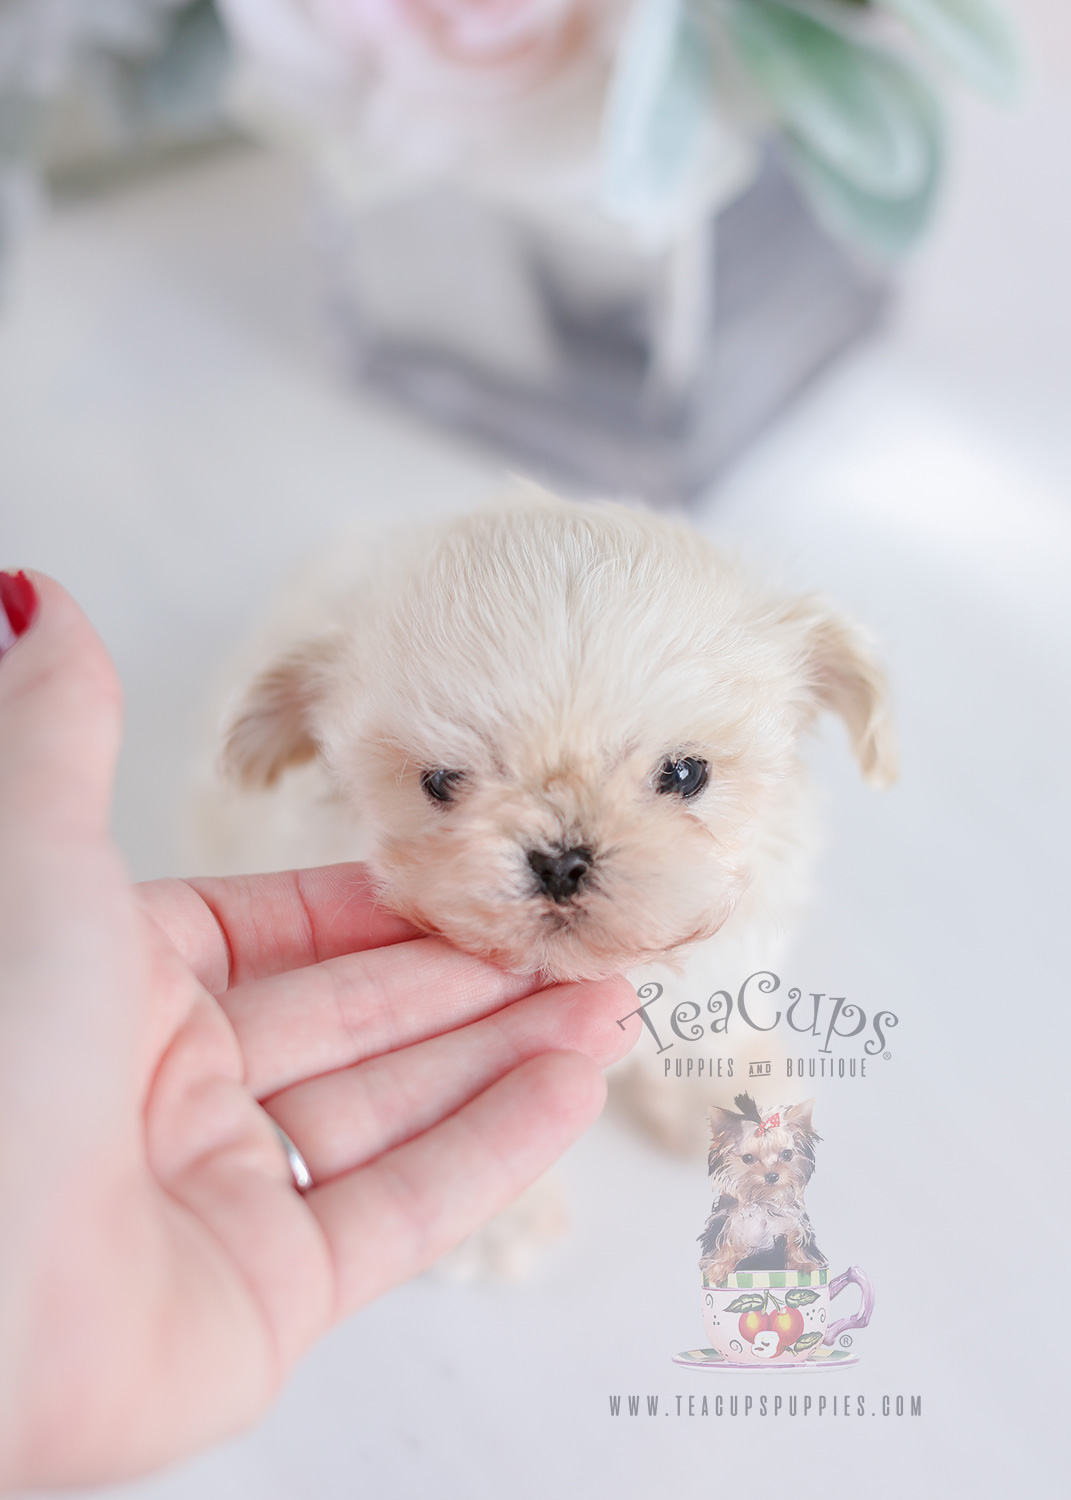 Micro Teacup Puppies Maltipoos For Sale